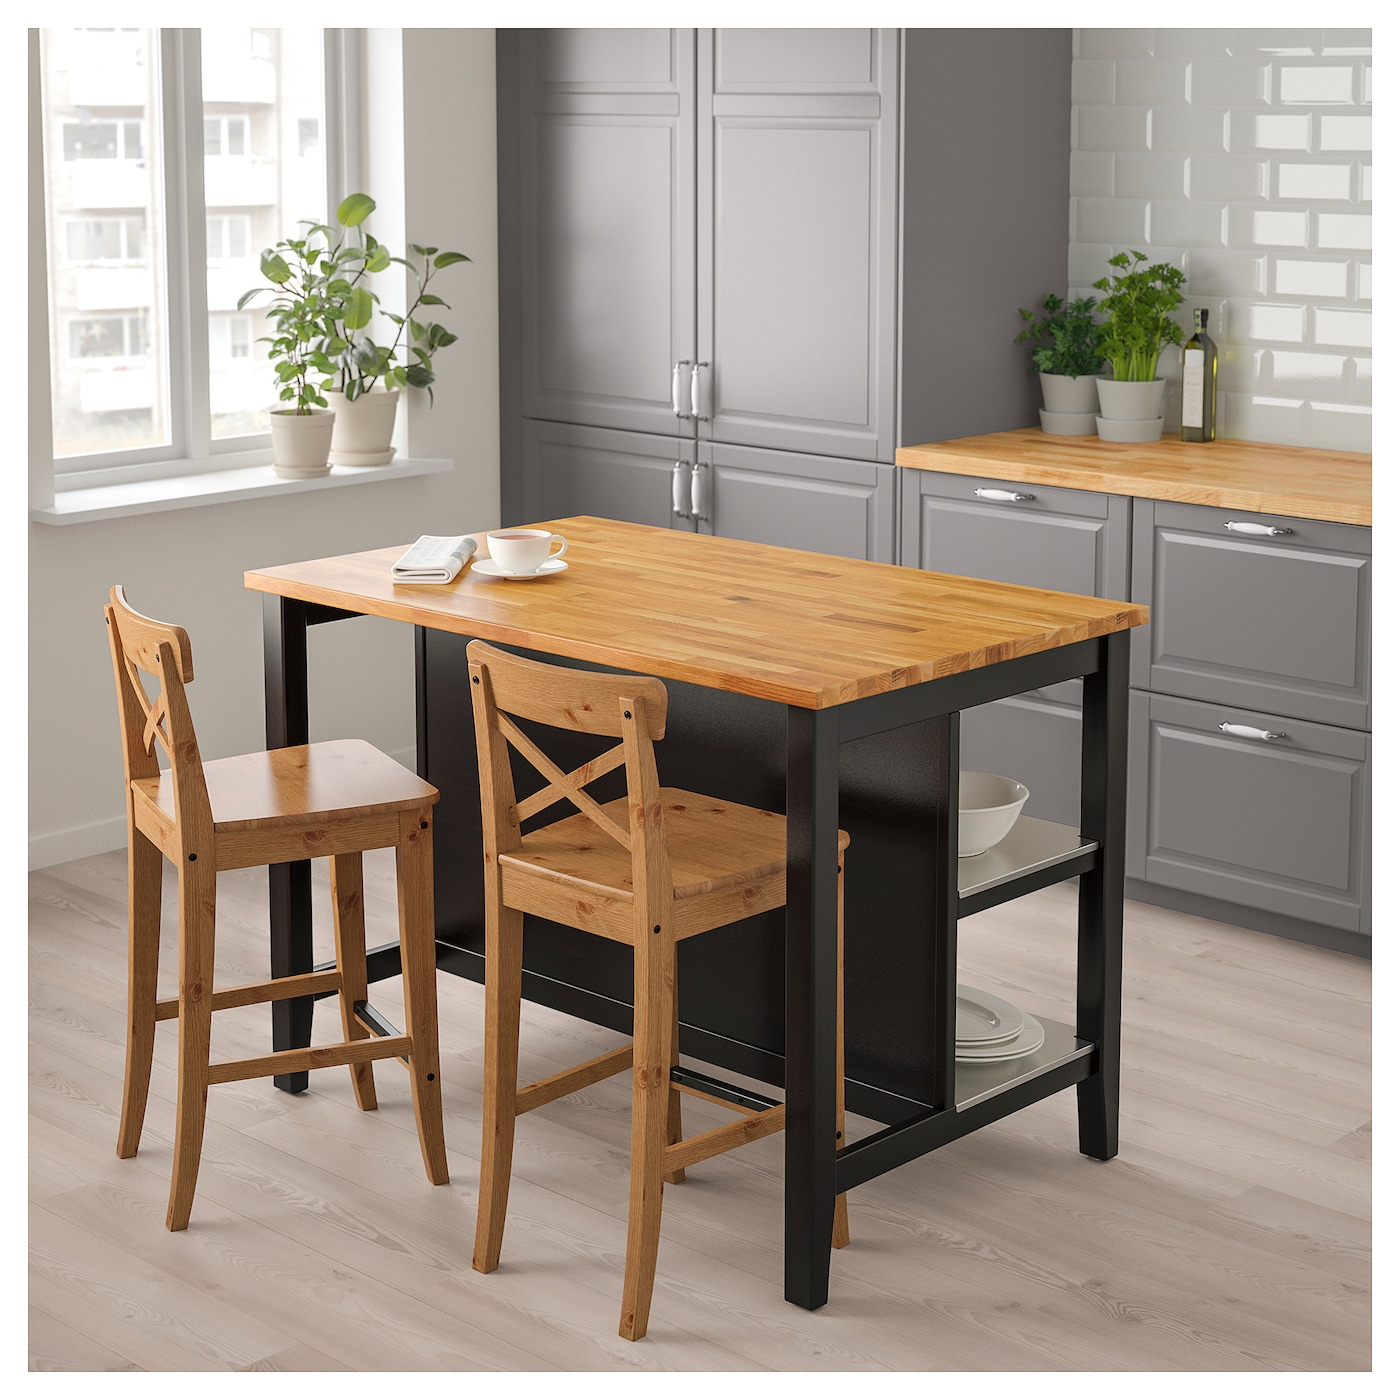 Ikea Kitchen Table Top Malaysia